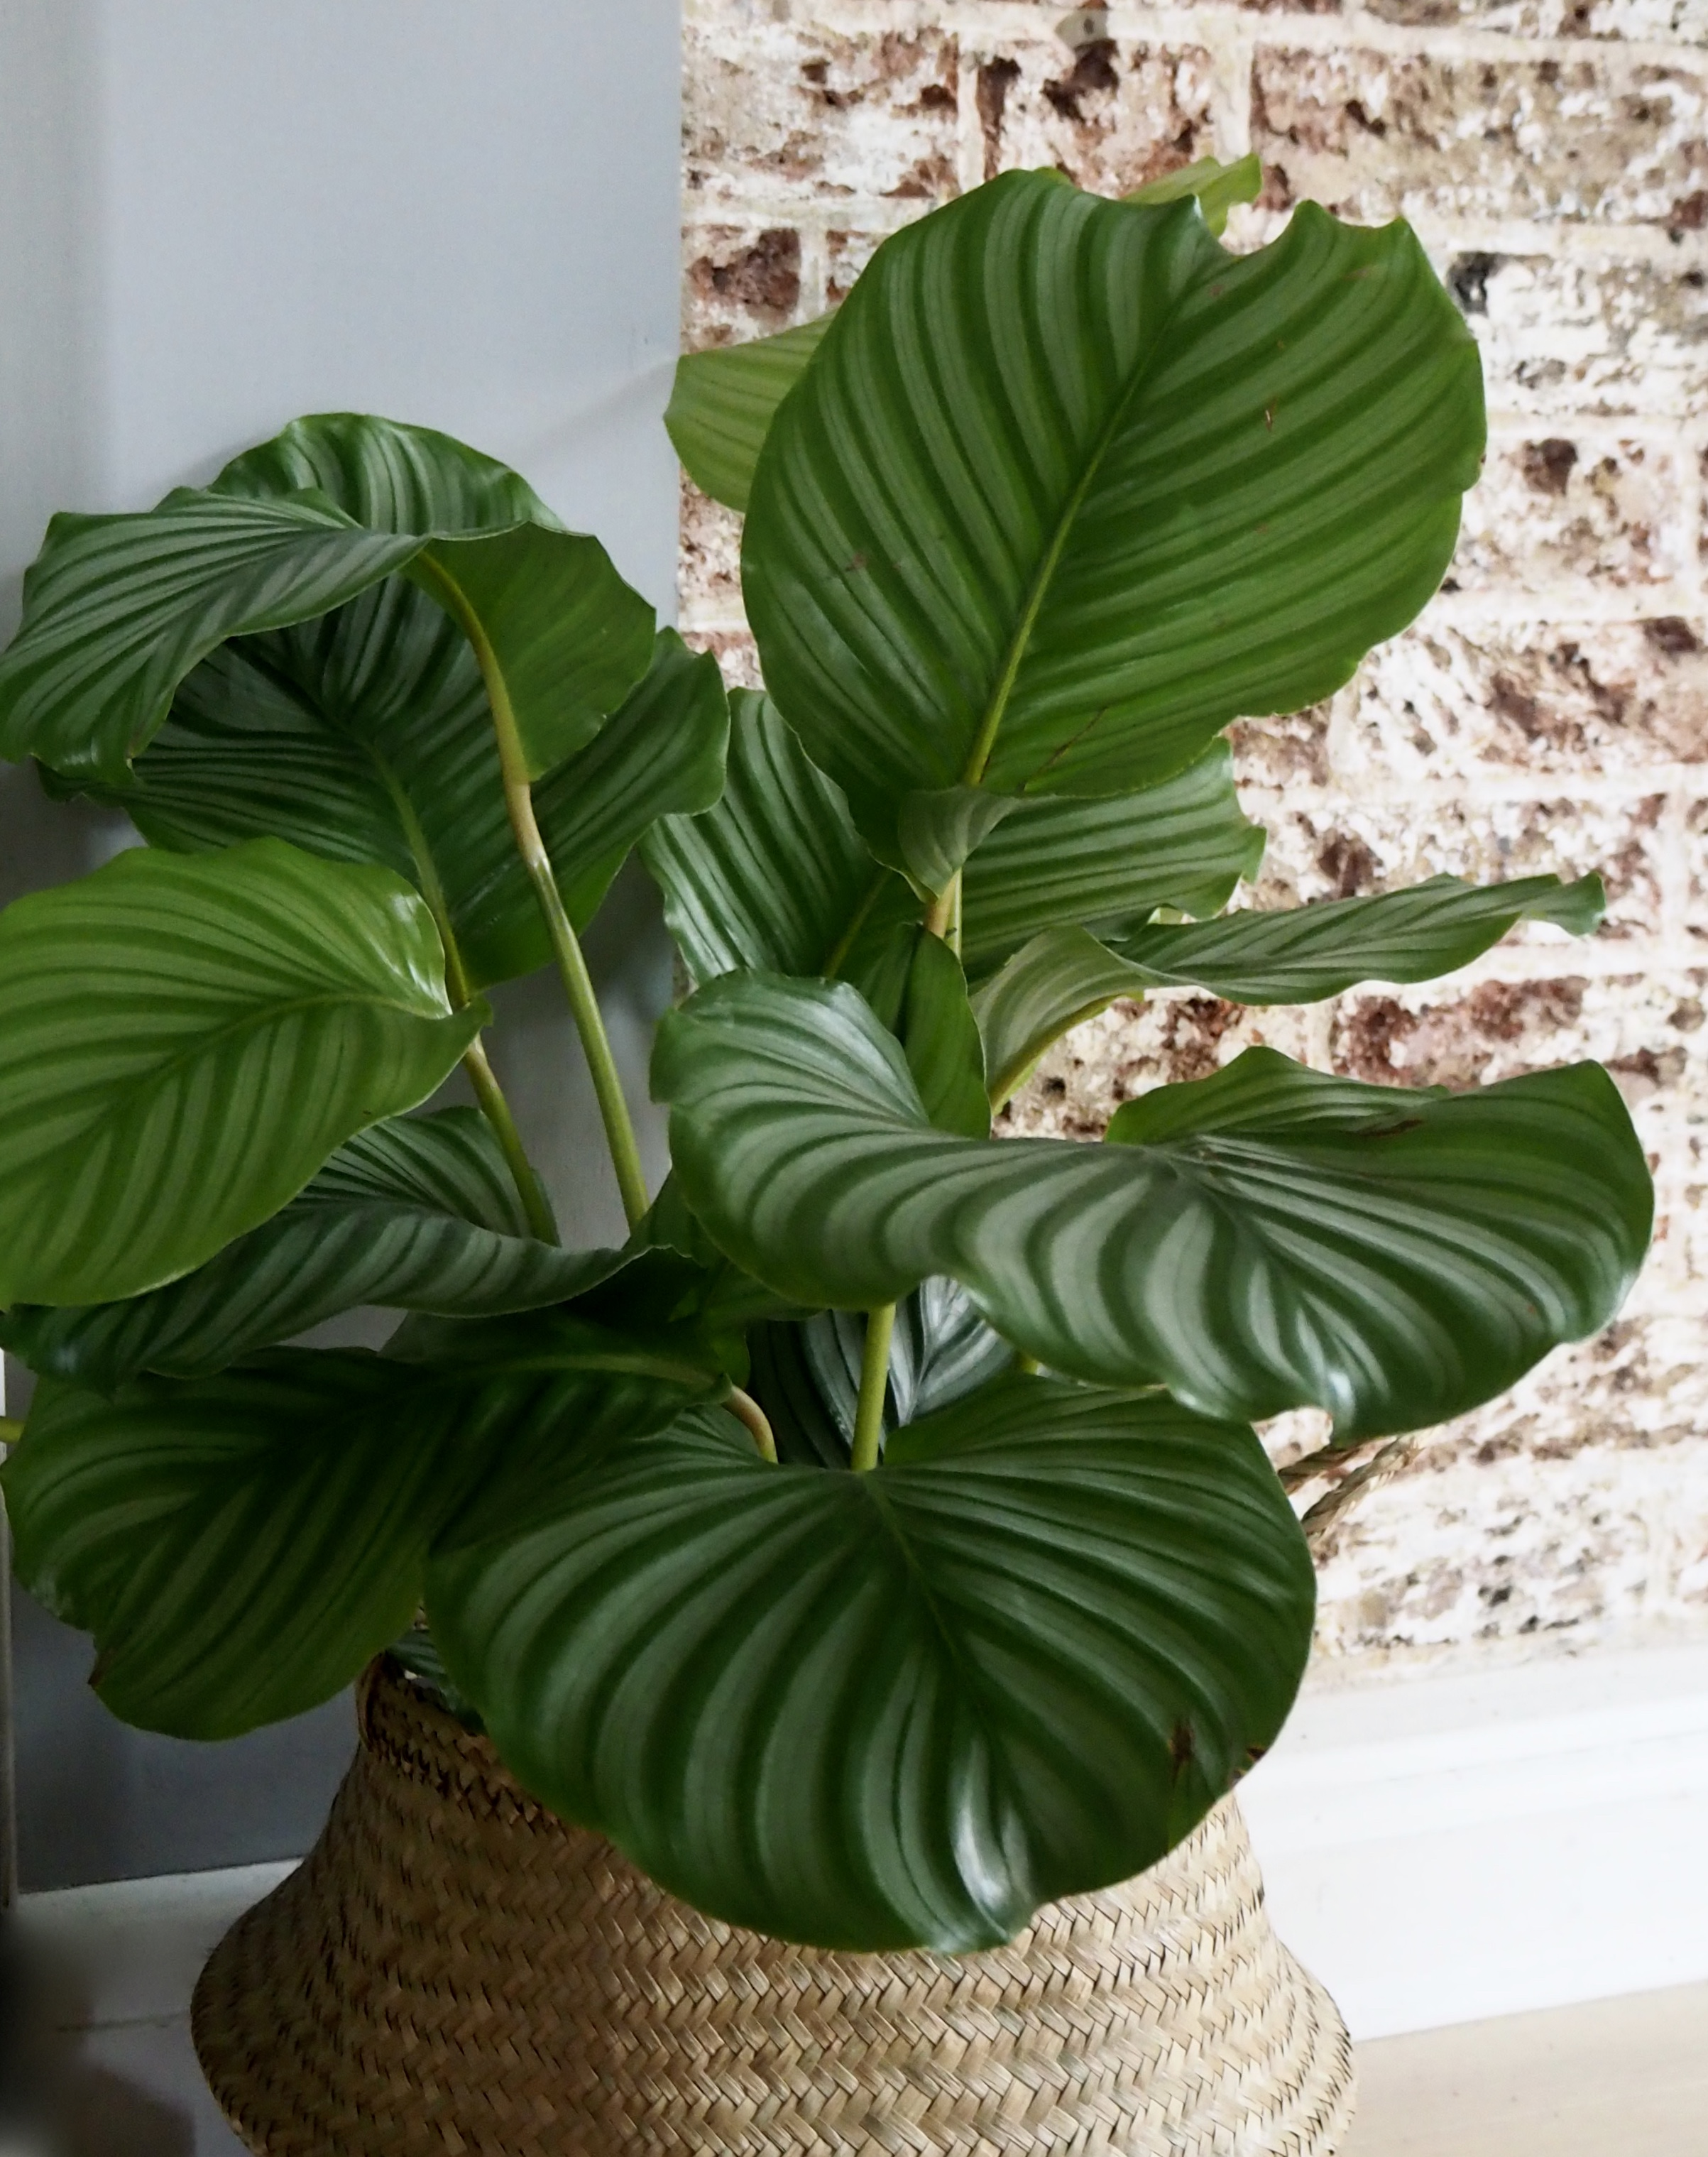 I love the pattern and colours of the leaves of this 'Round Leaf Calathea'plant in my home, it's one of my favourites.......